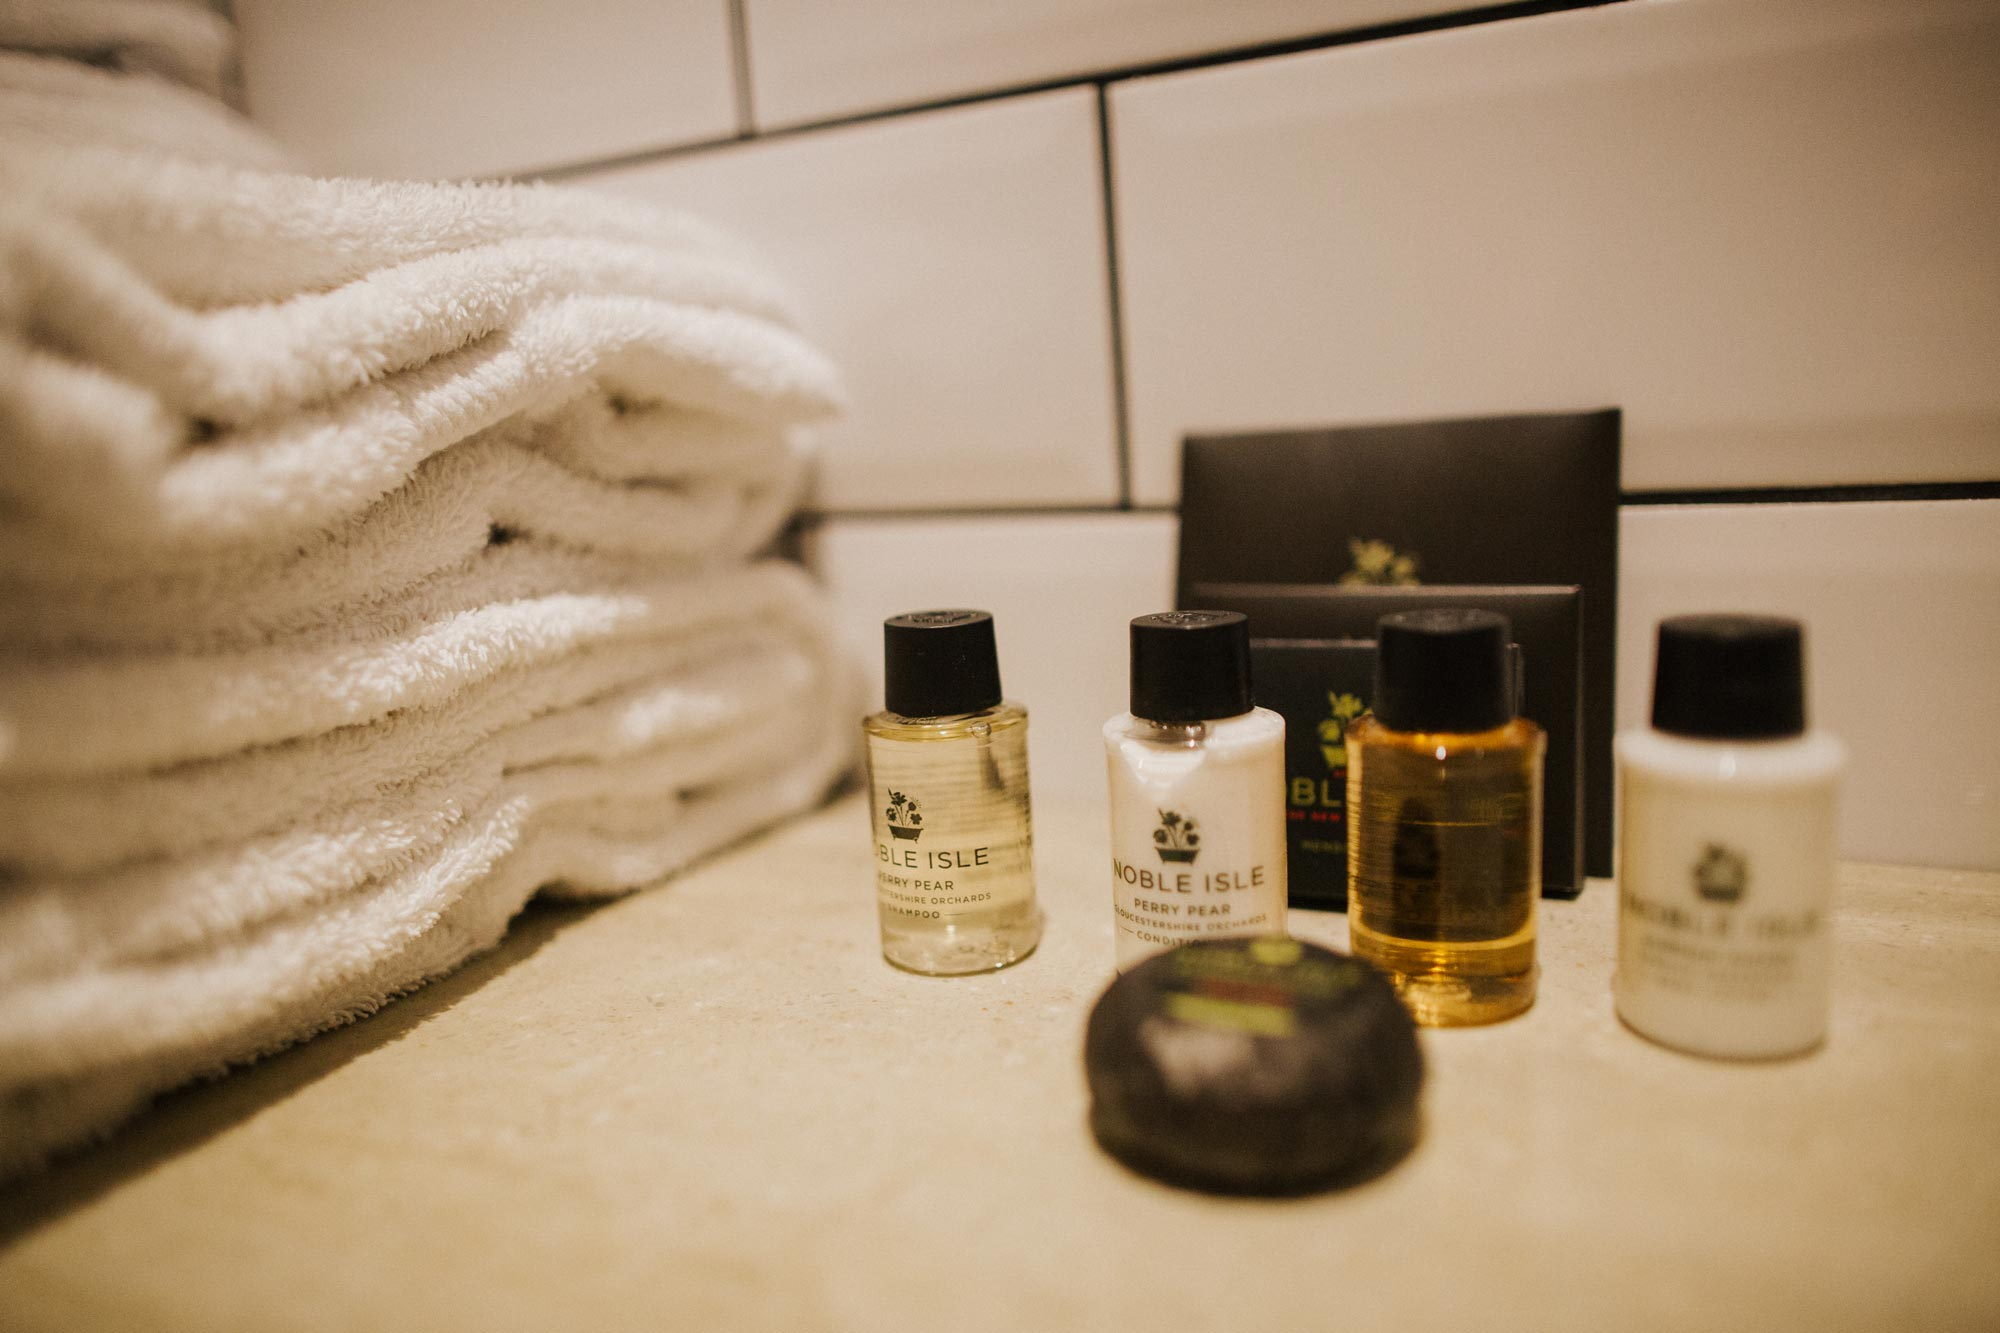 Noble Isle products in the hotel room at The Globe in Warwick.jpg